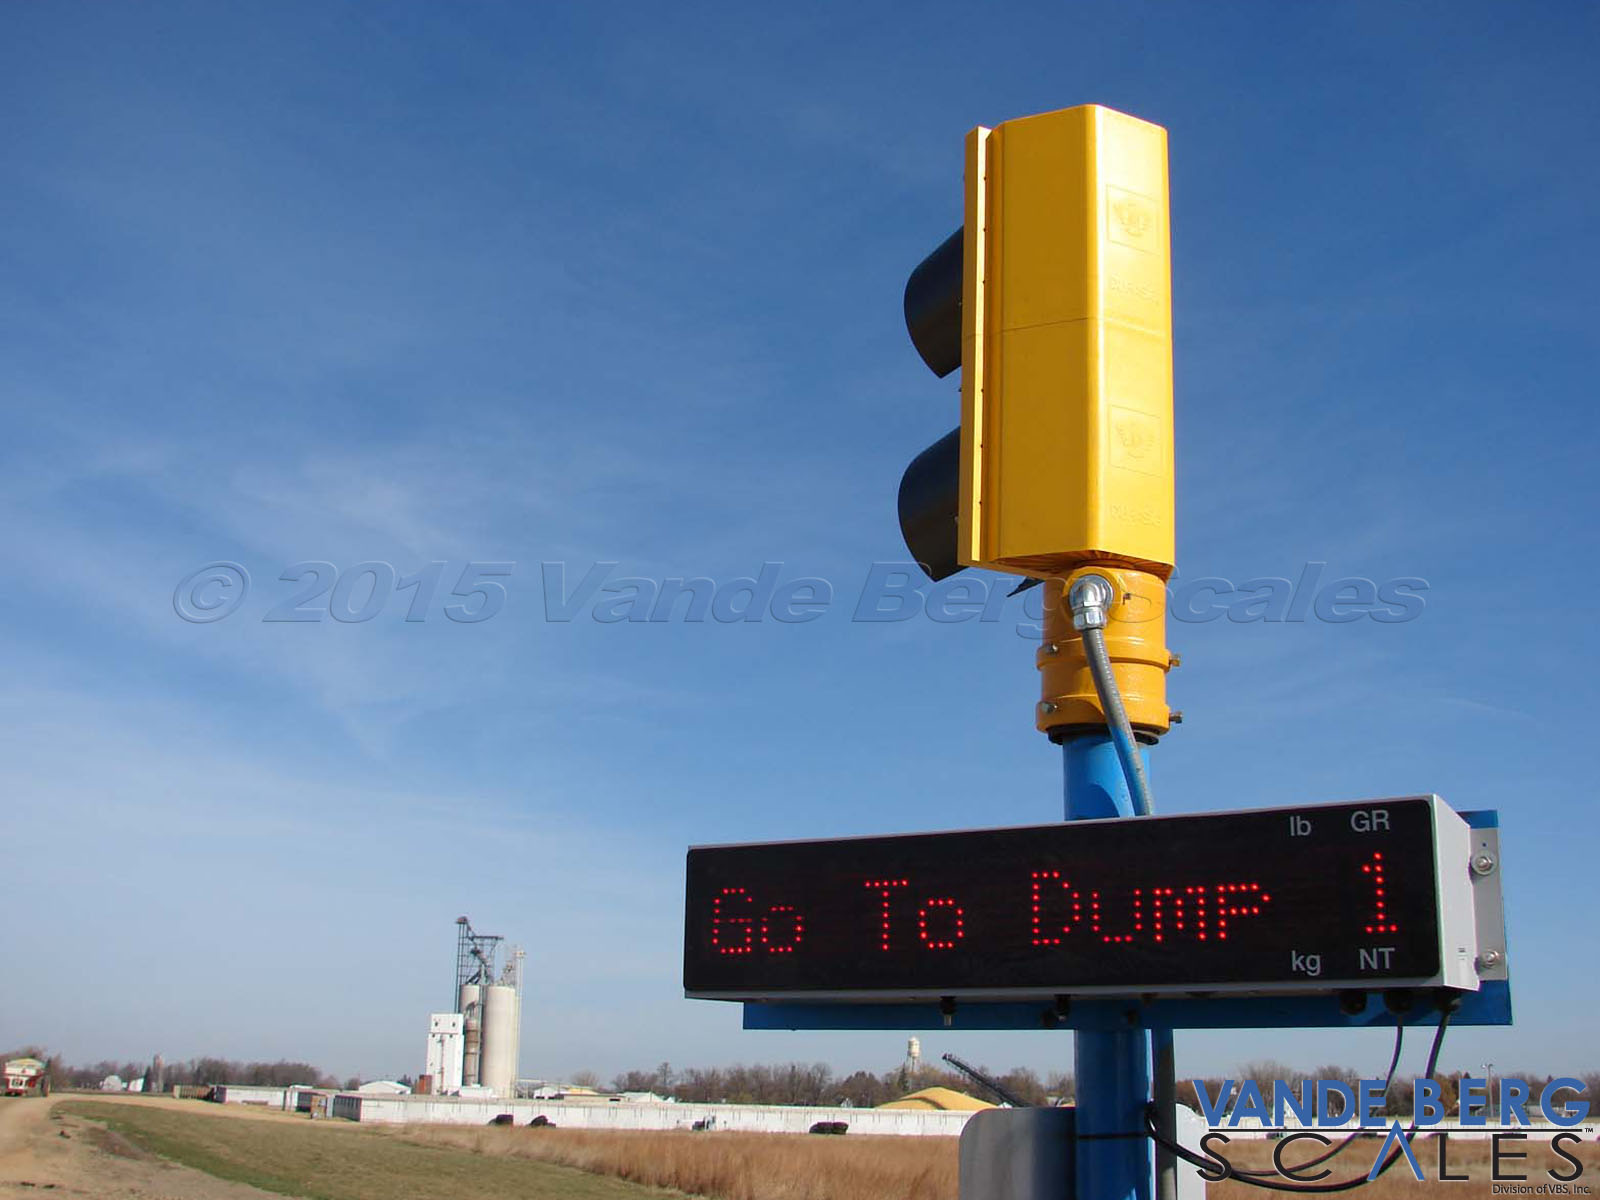 Give clear instructions to save time when managing trucks or tractors